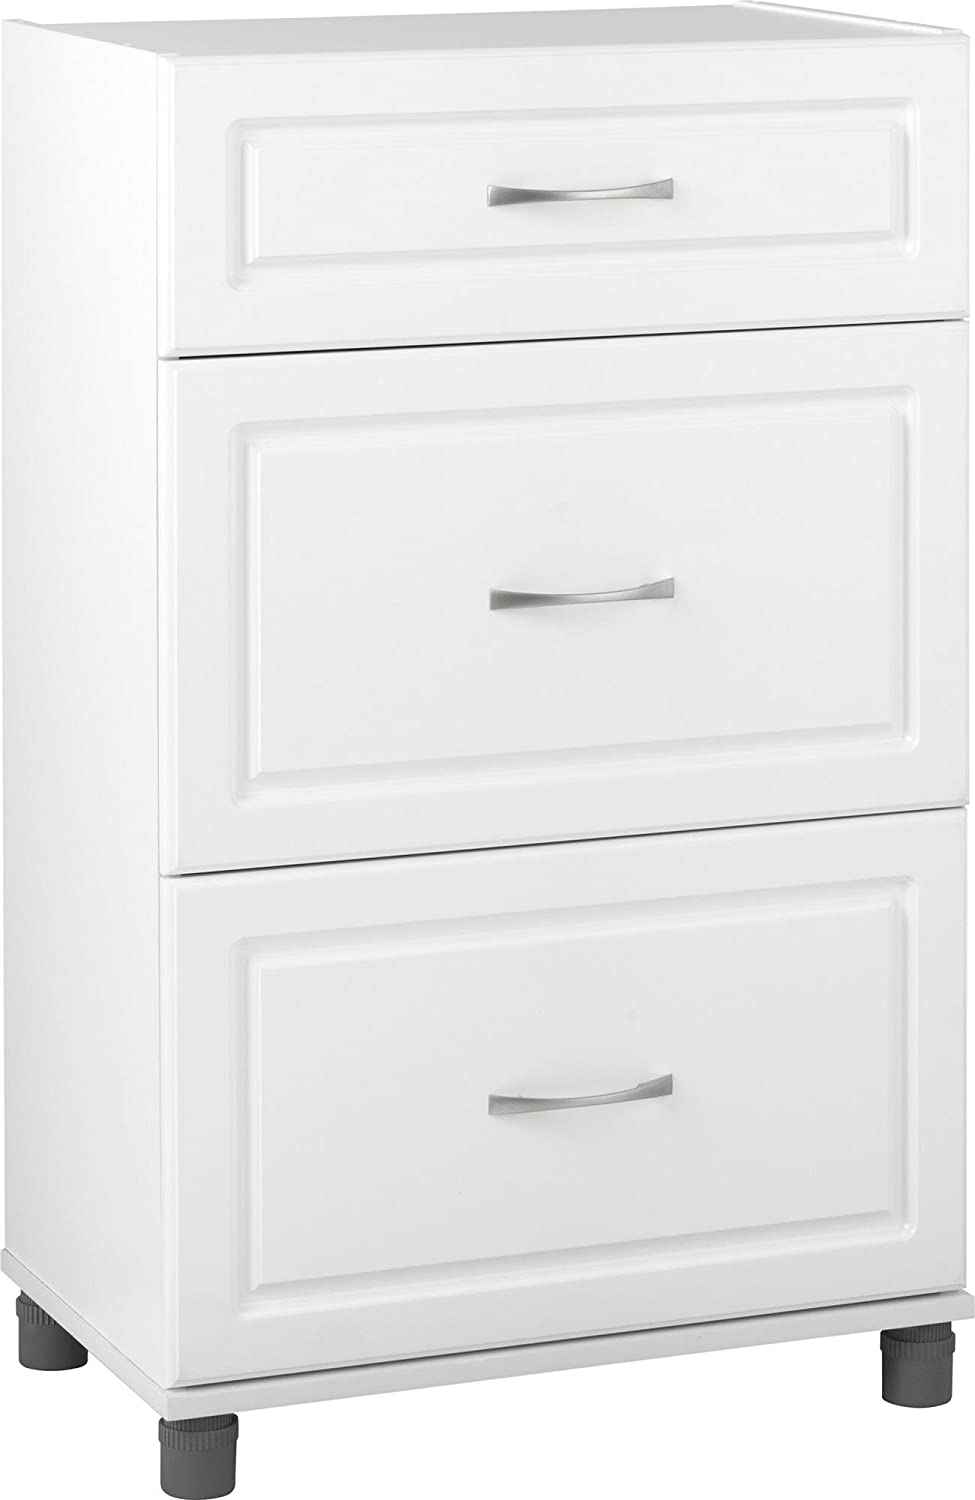 "Ameriwood Kendall 3 Drawer Base Cabinet 24"" White"